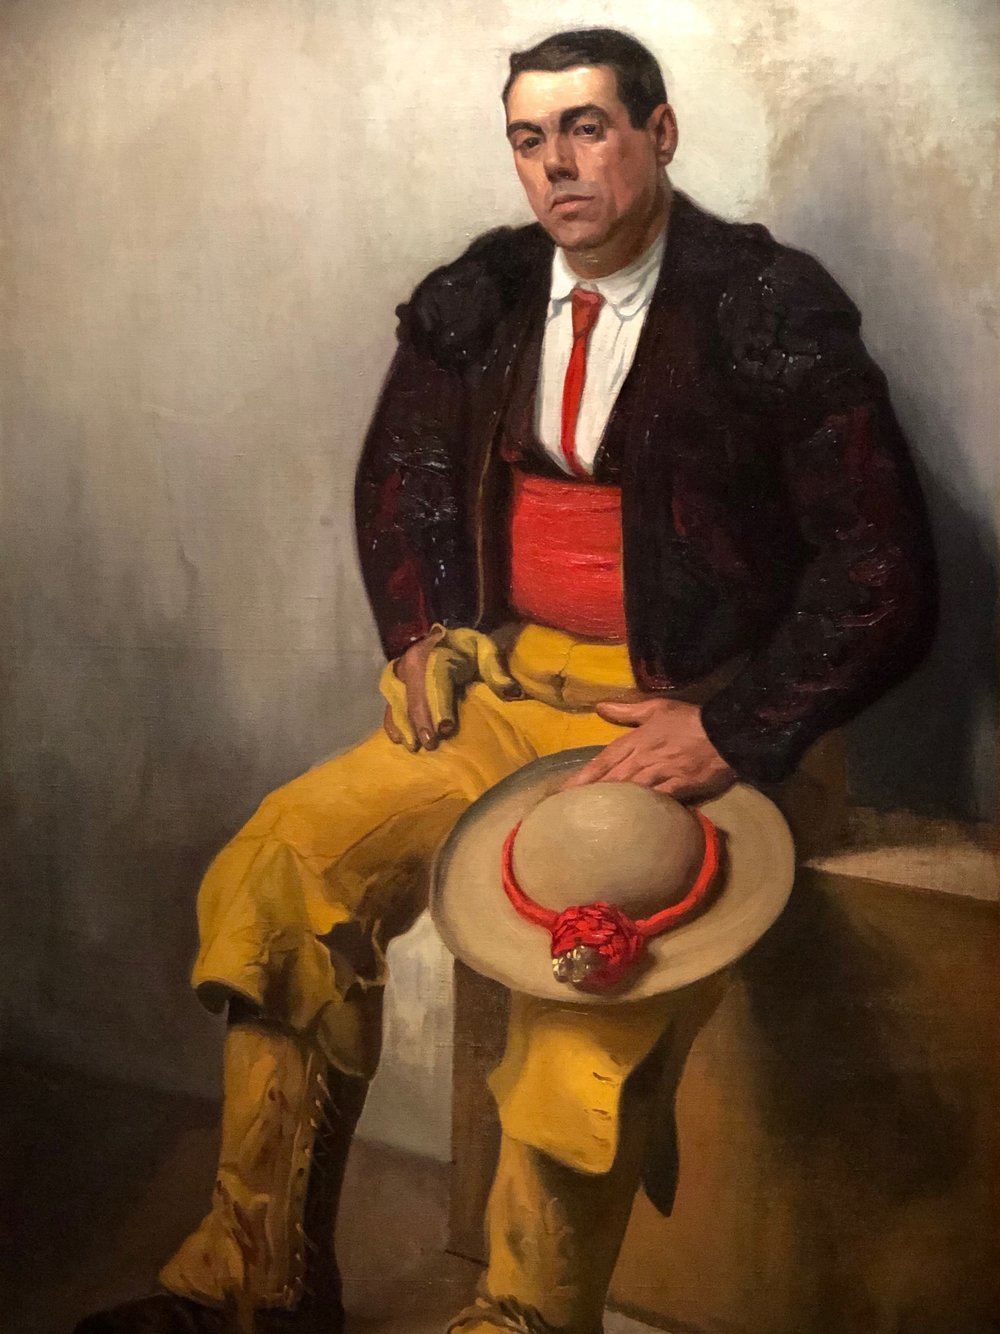 El Picador , a painting of a seated Spanish bullfighter, shows the influence of Diego's time in Spain under the tutelage of one of Madrid's leading portrait painters, Eduardo Chicharro